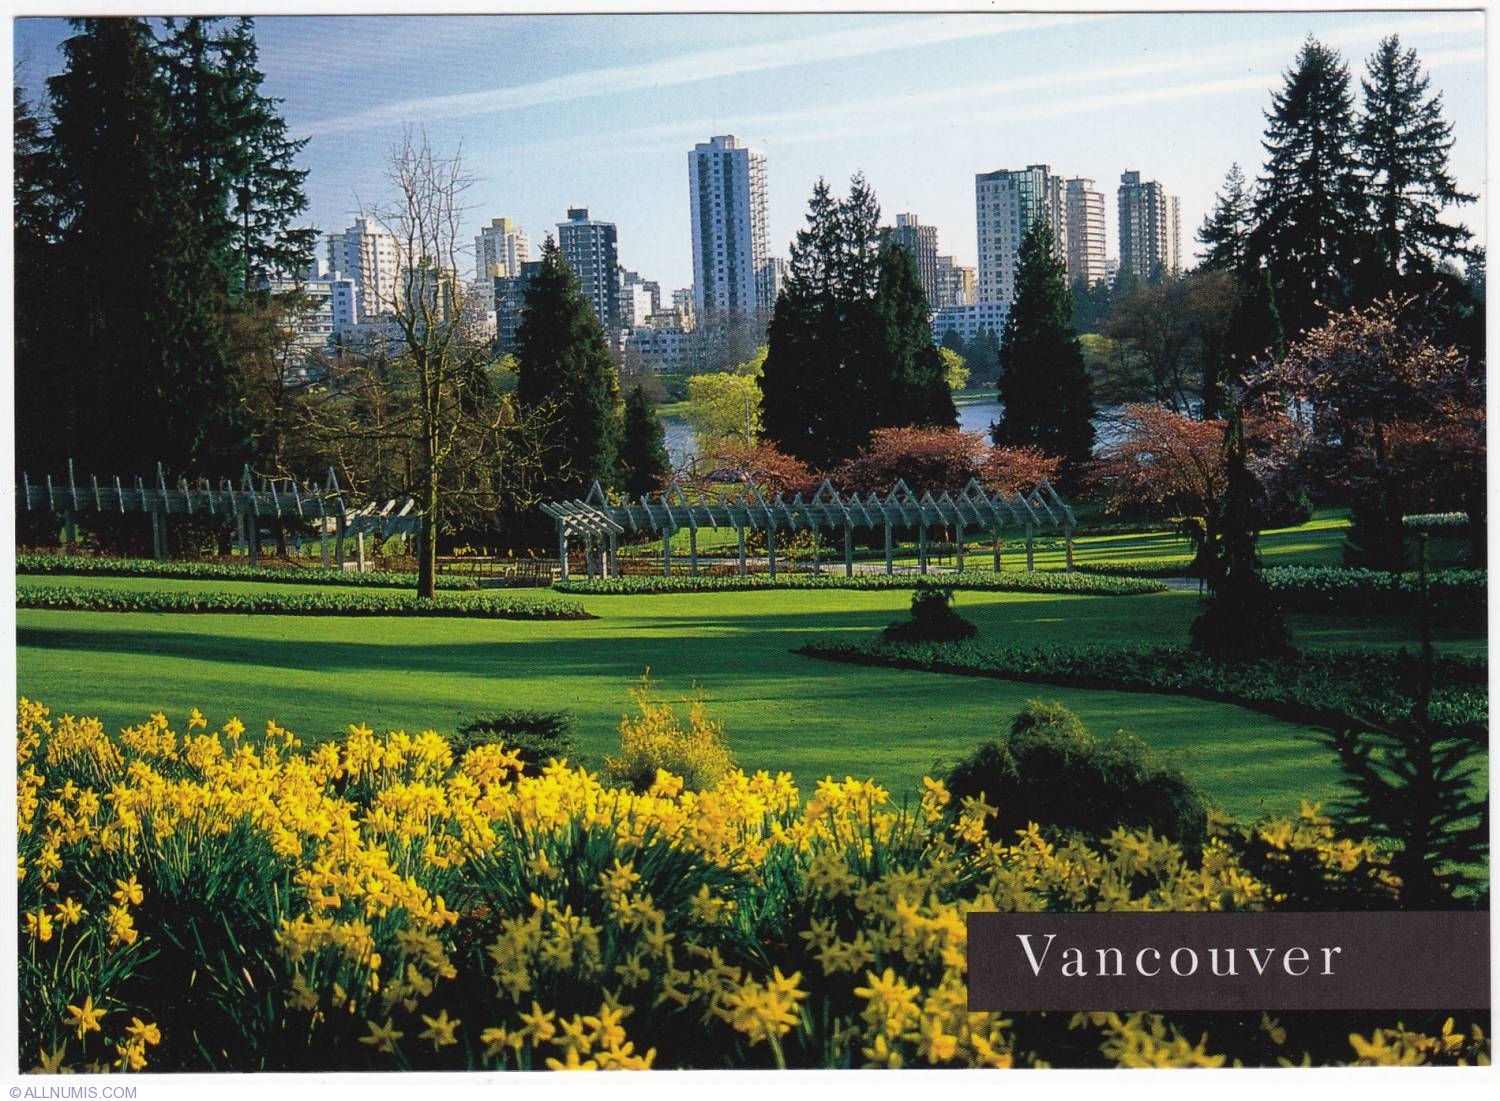 General-photos-vancouver-stanley-park